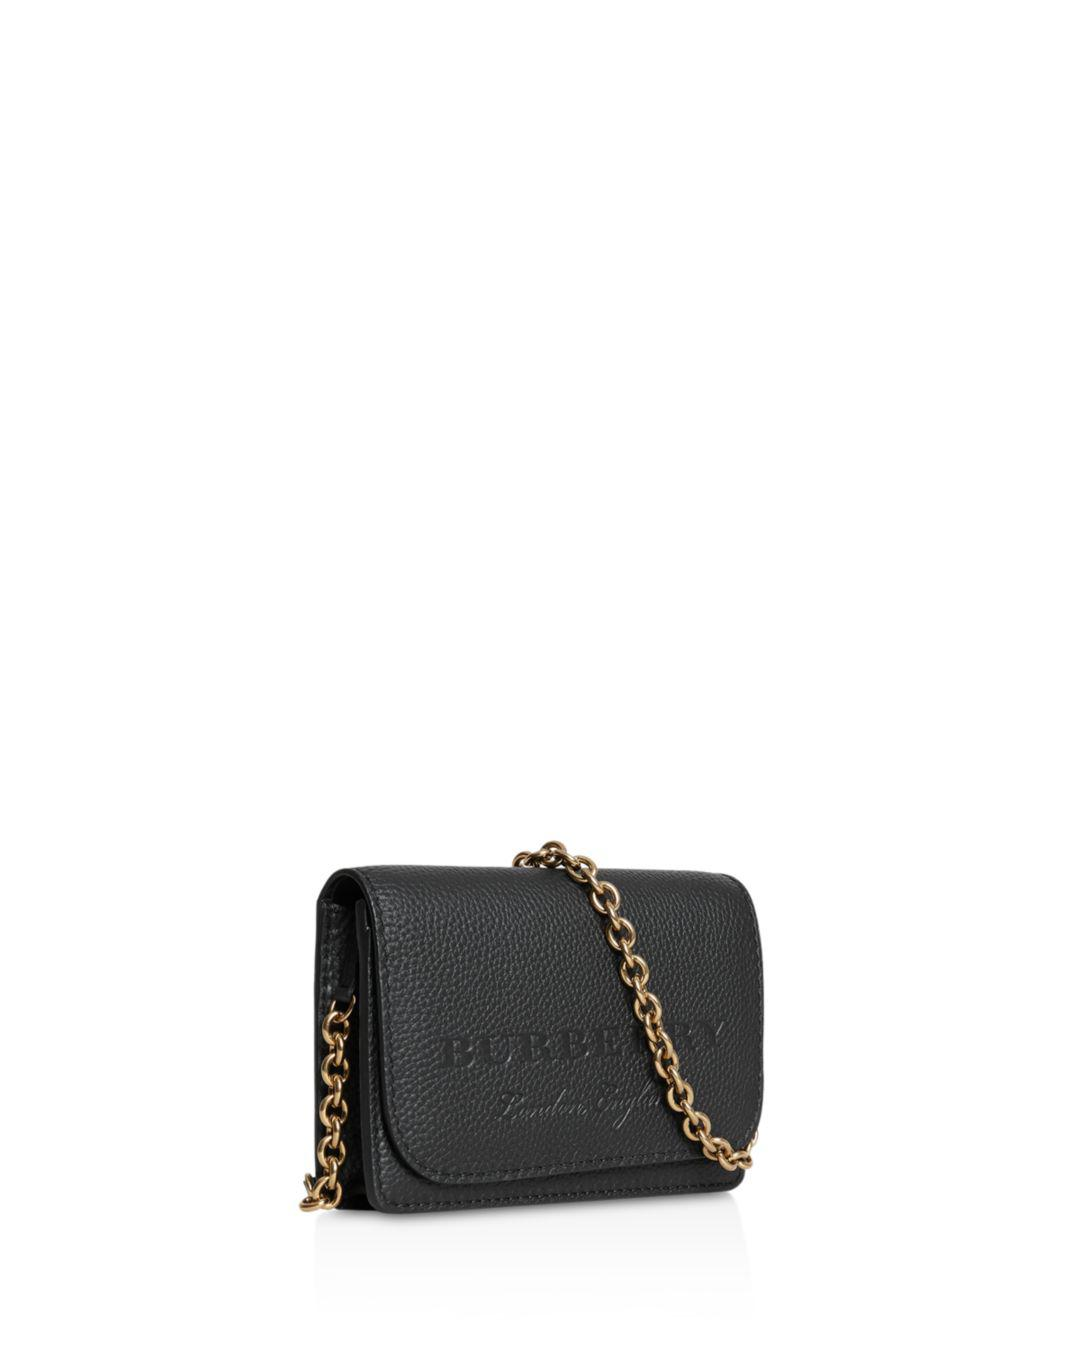 8b08abe2278c Lyst - Burberry Hampshire Embossed Leather Crossbody in Black